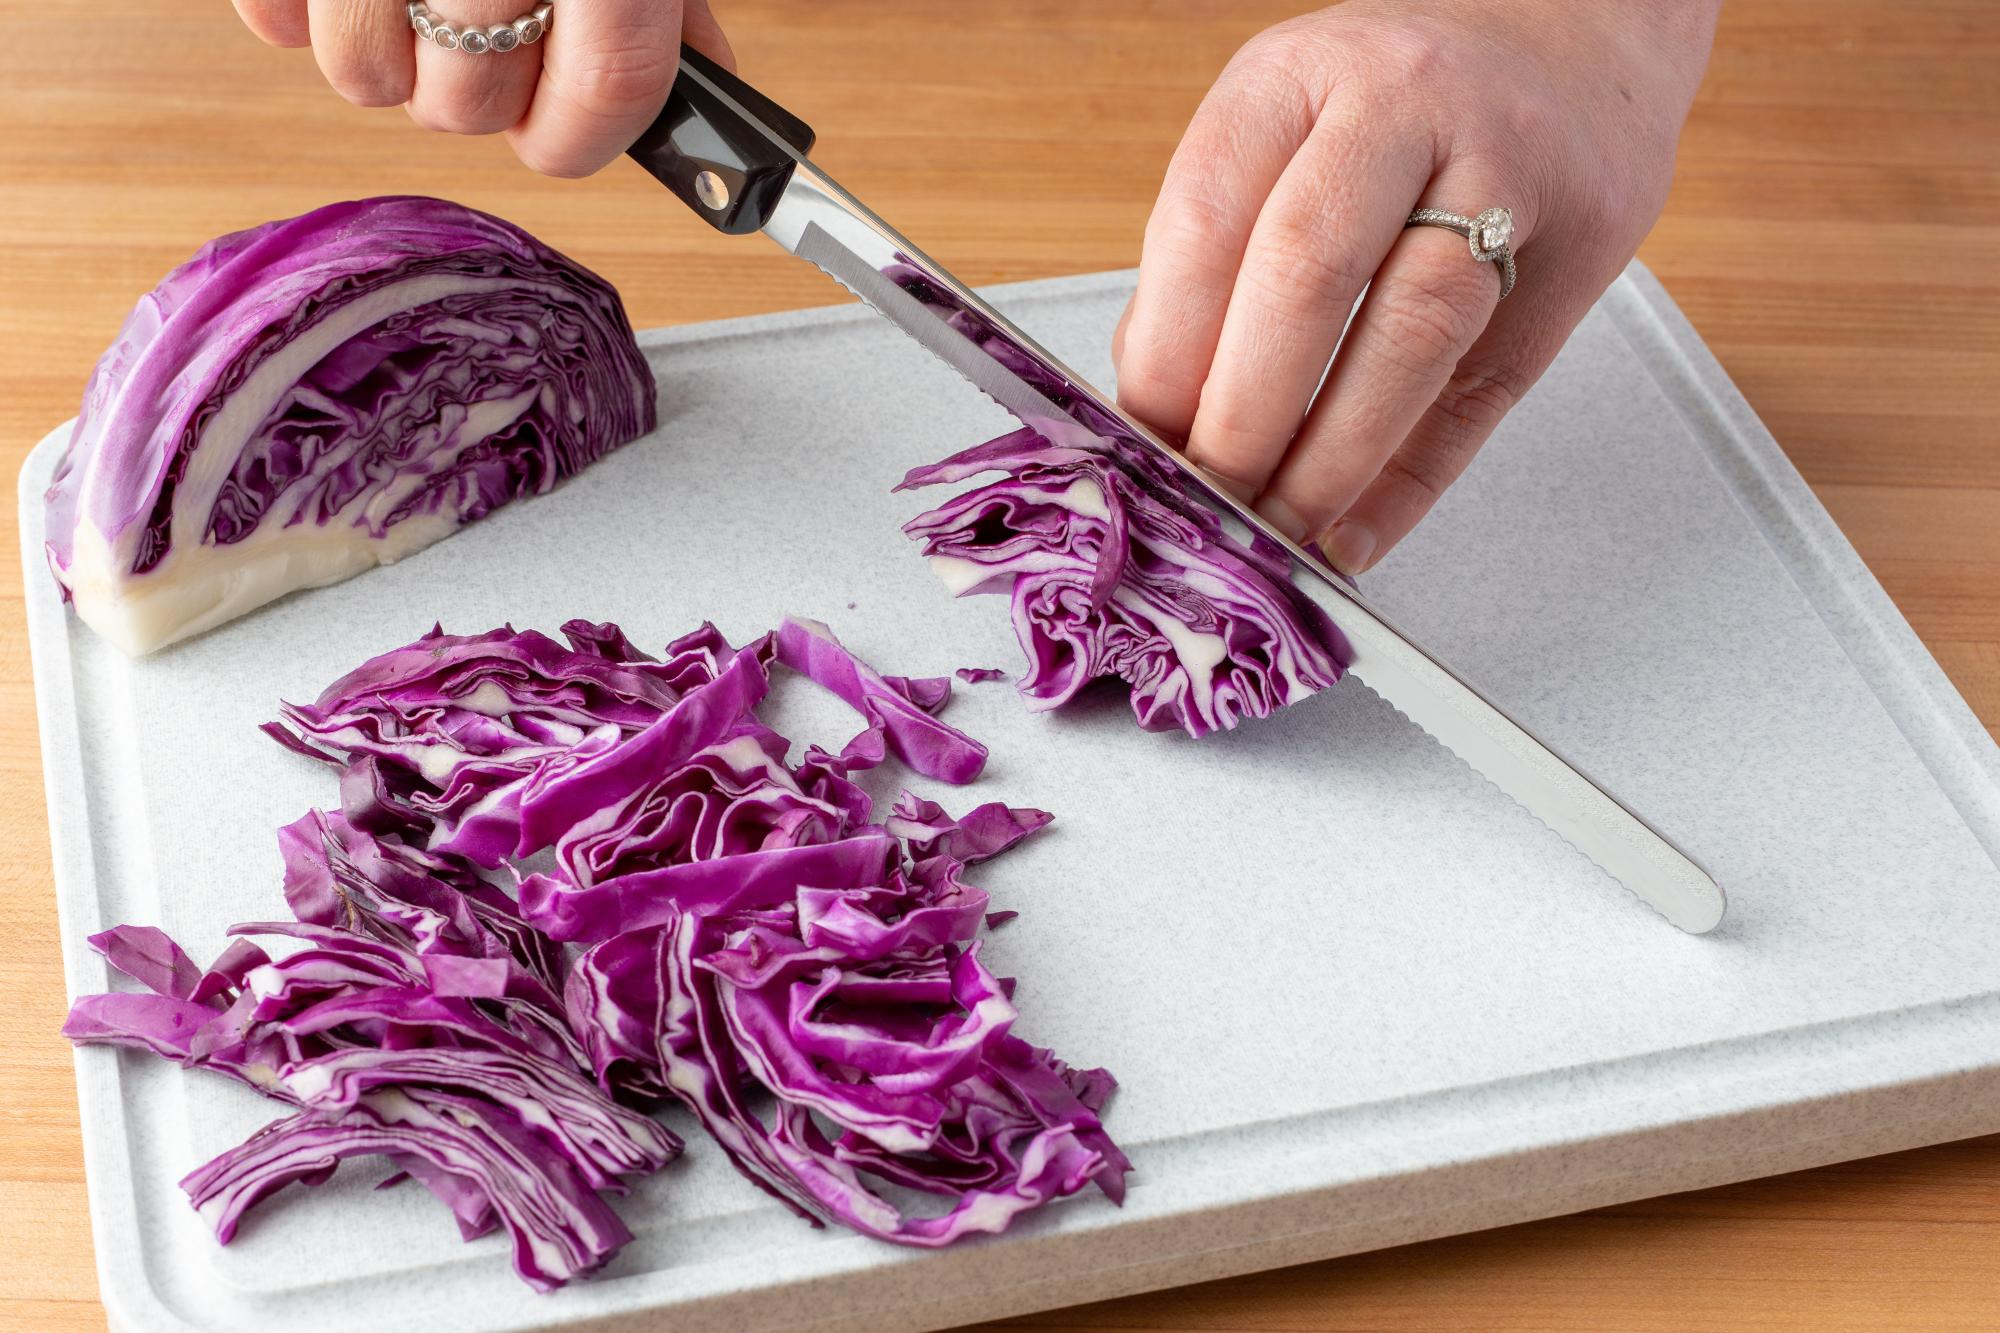 Shredding the cabbage with a Petite Slicer.